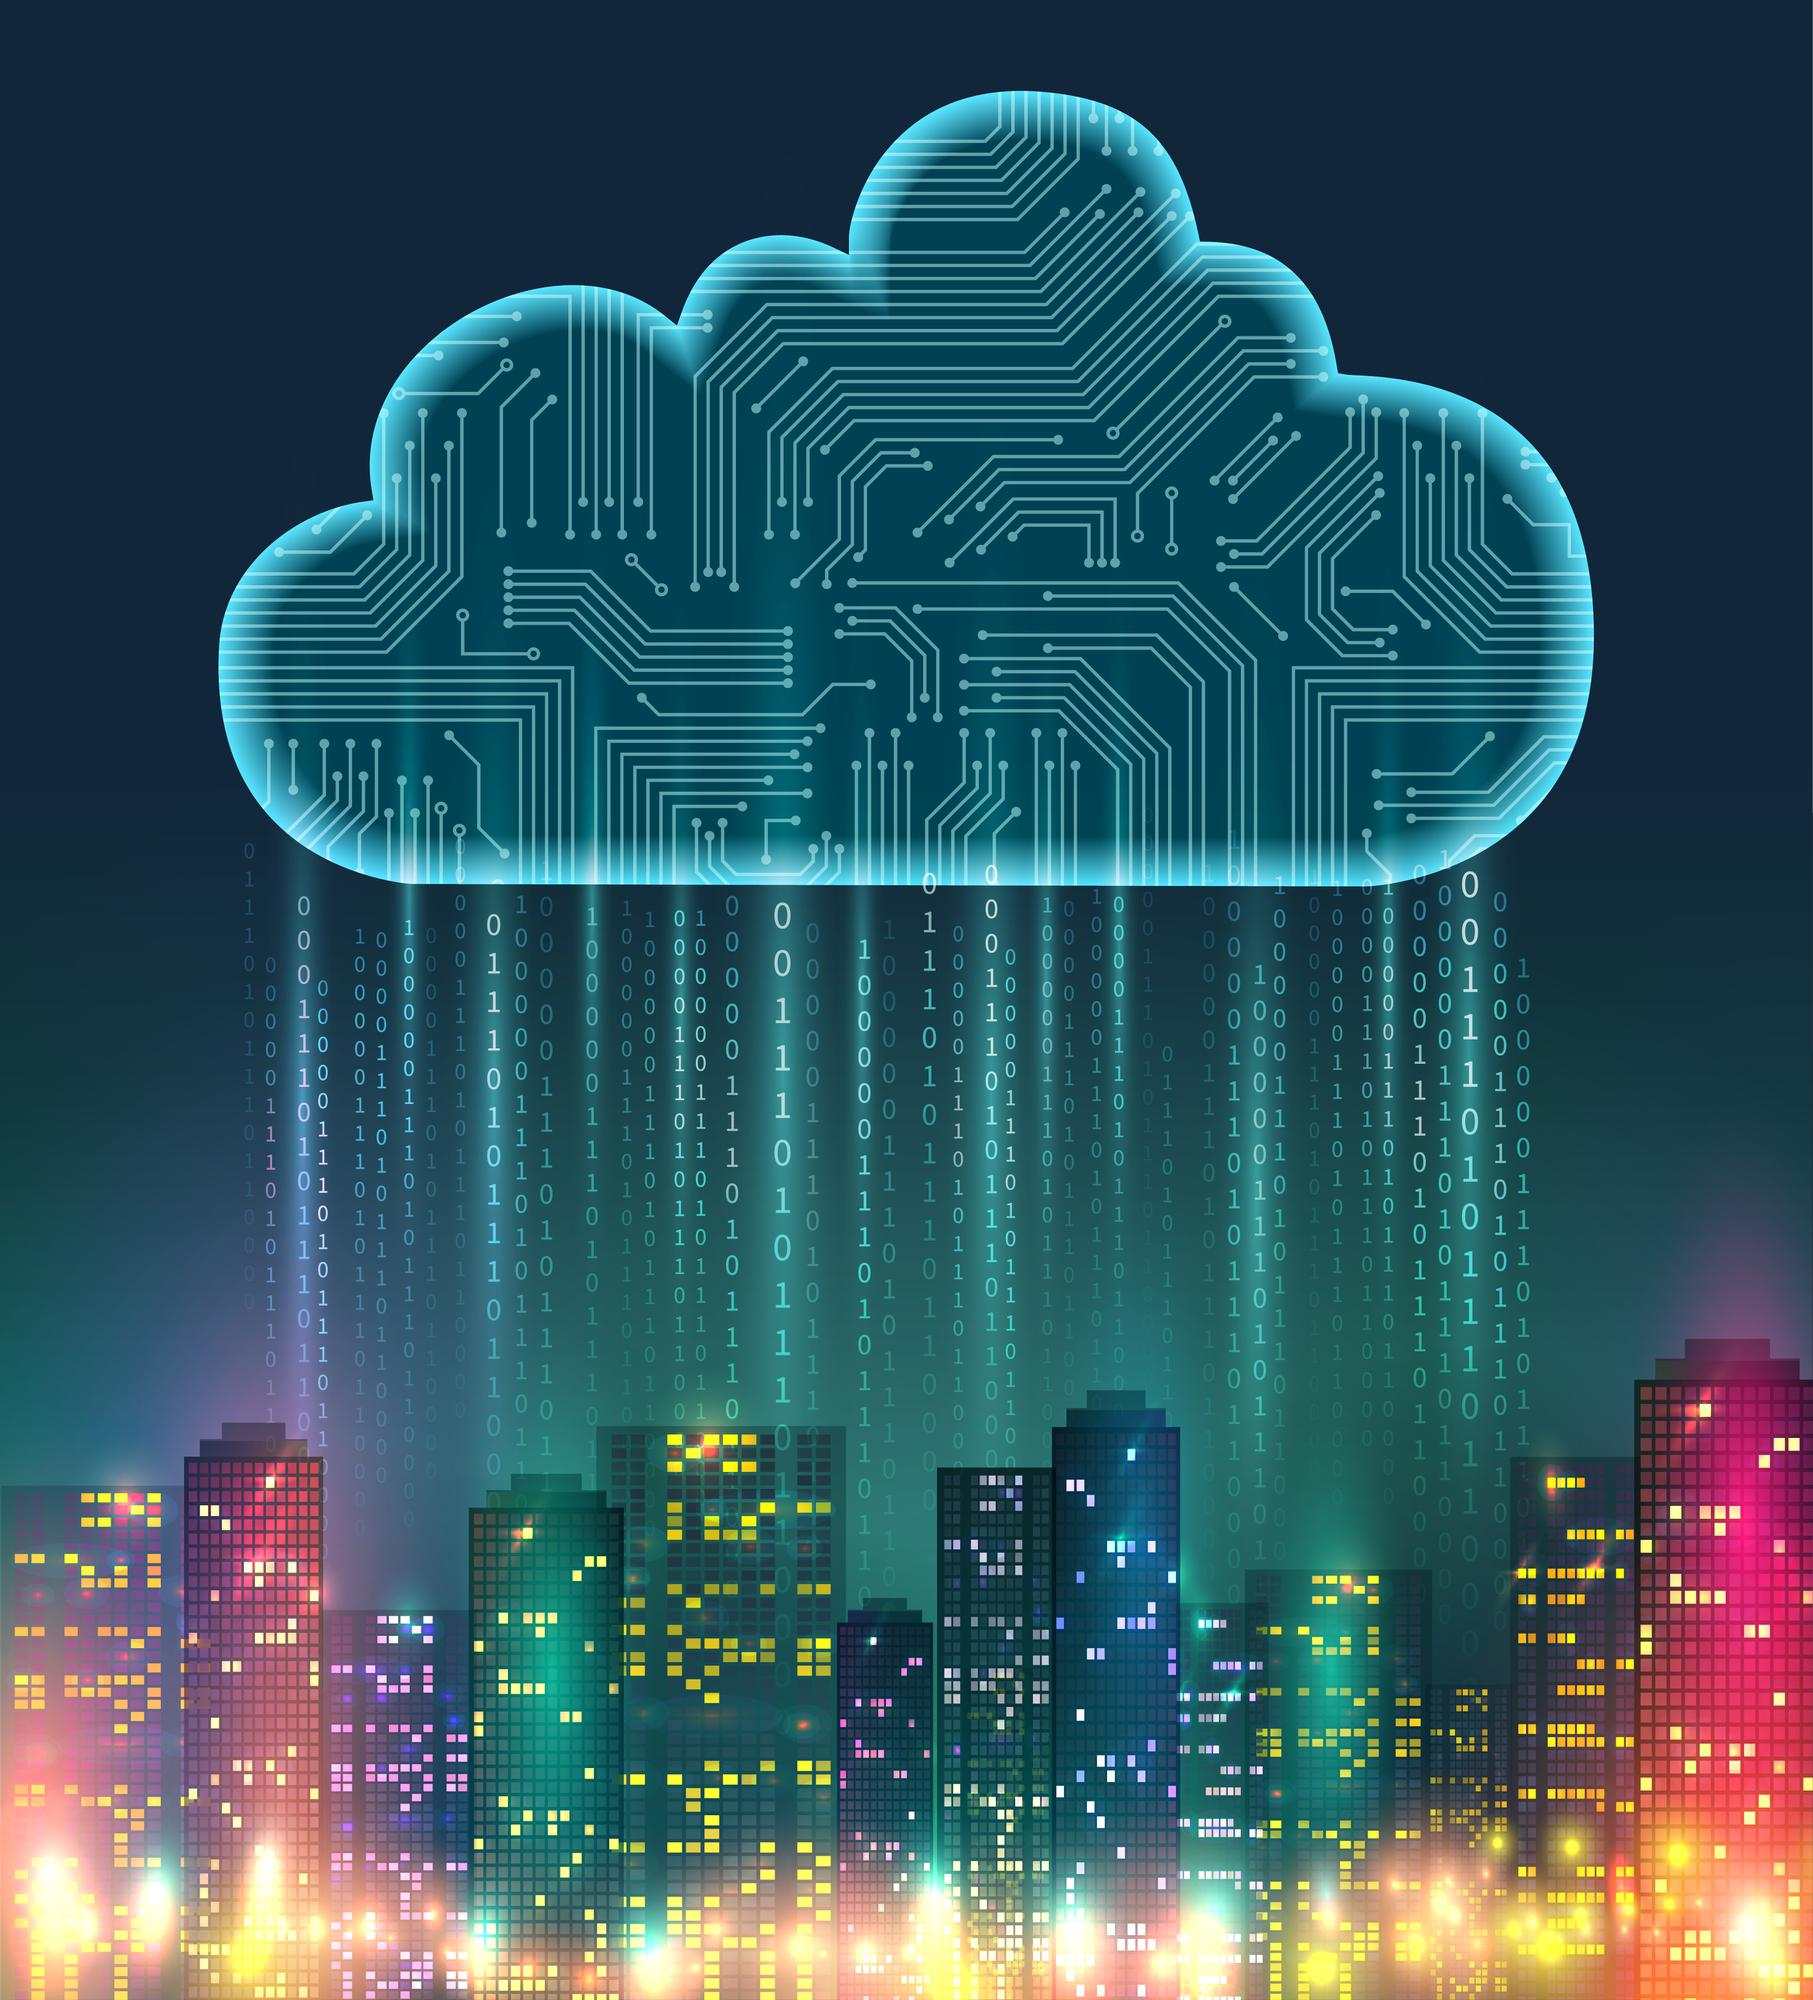 Cloud Sourcing trends in most important industries